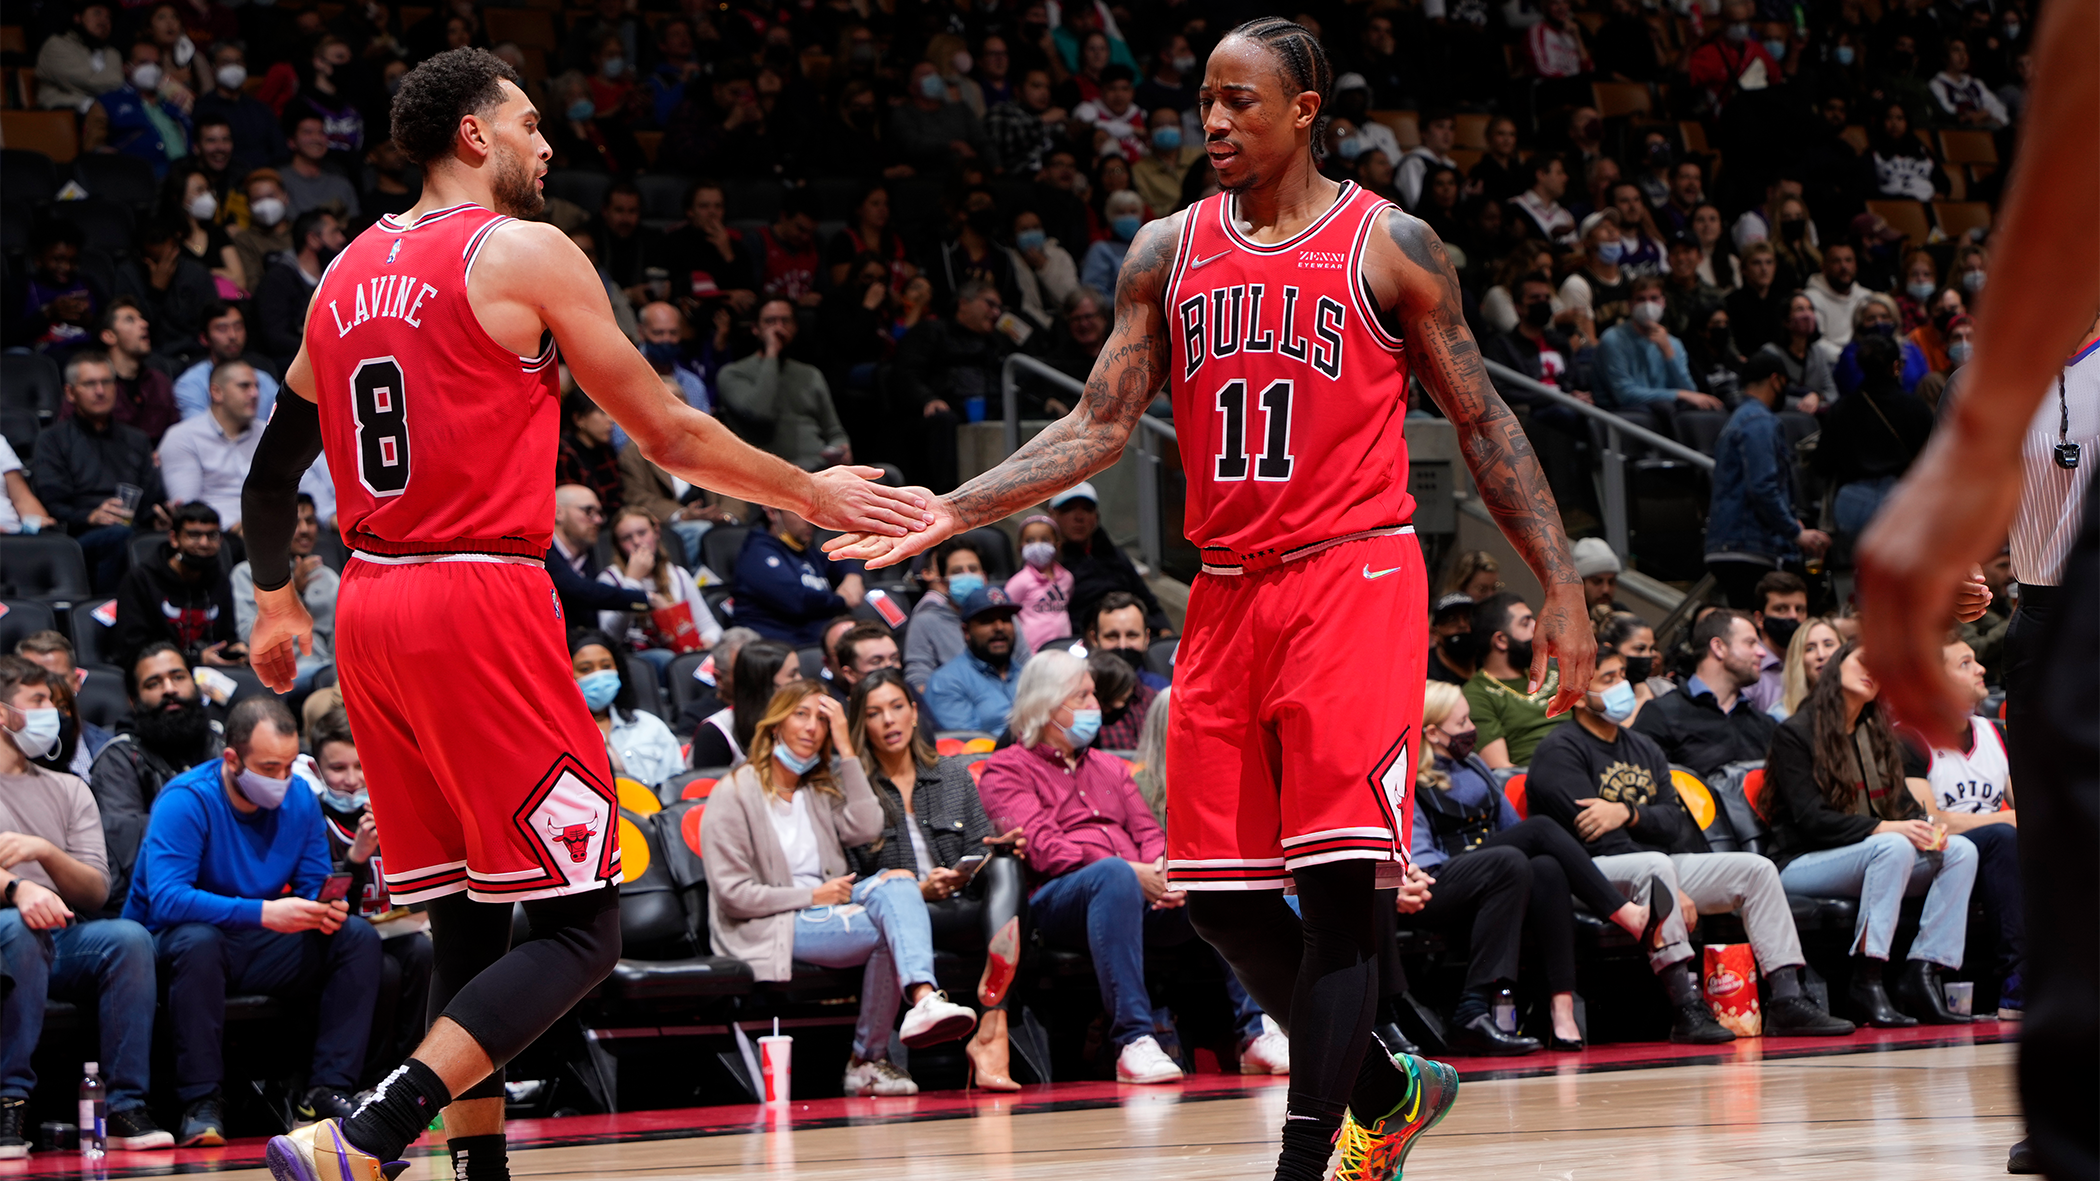 New Bulls squad continues to shine at 4-0